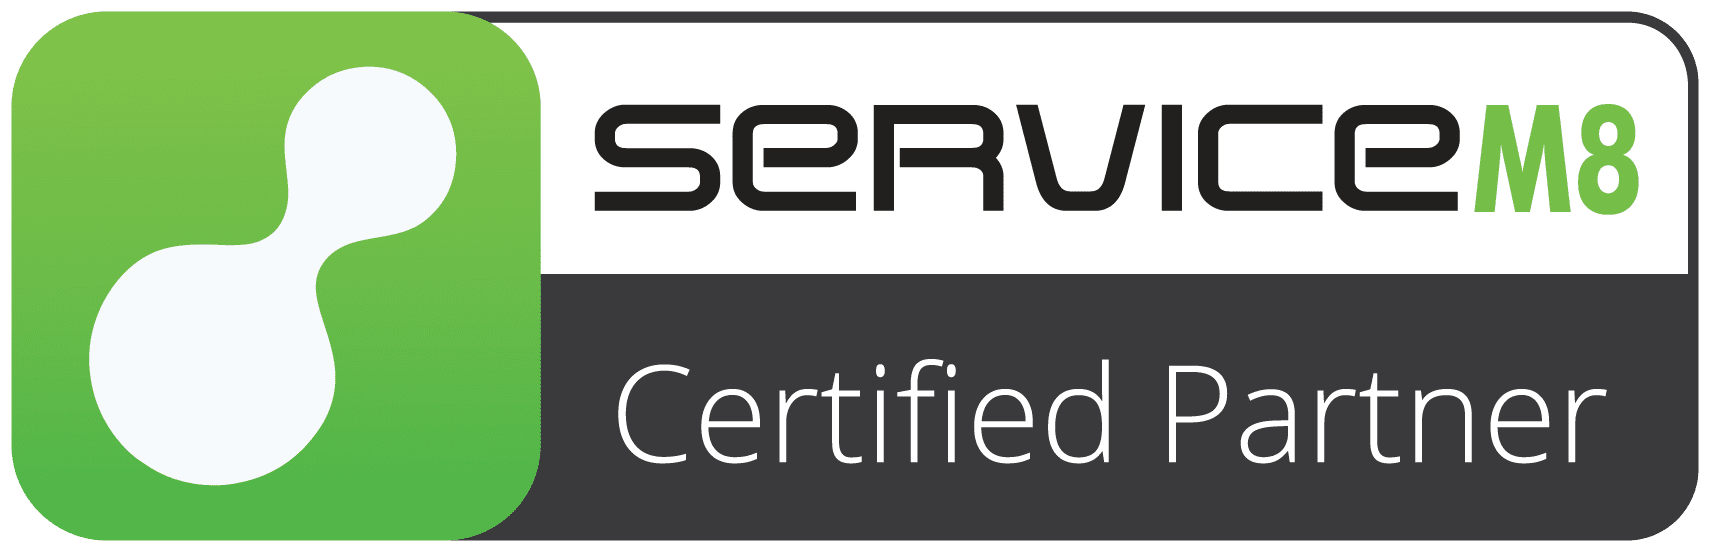 ServiceM8 - Job Management | Certified Partner